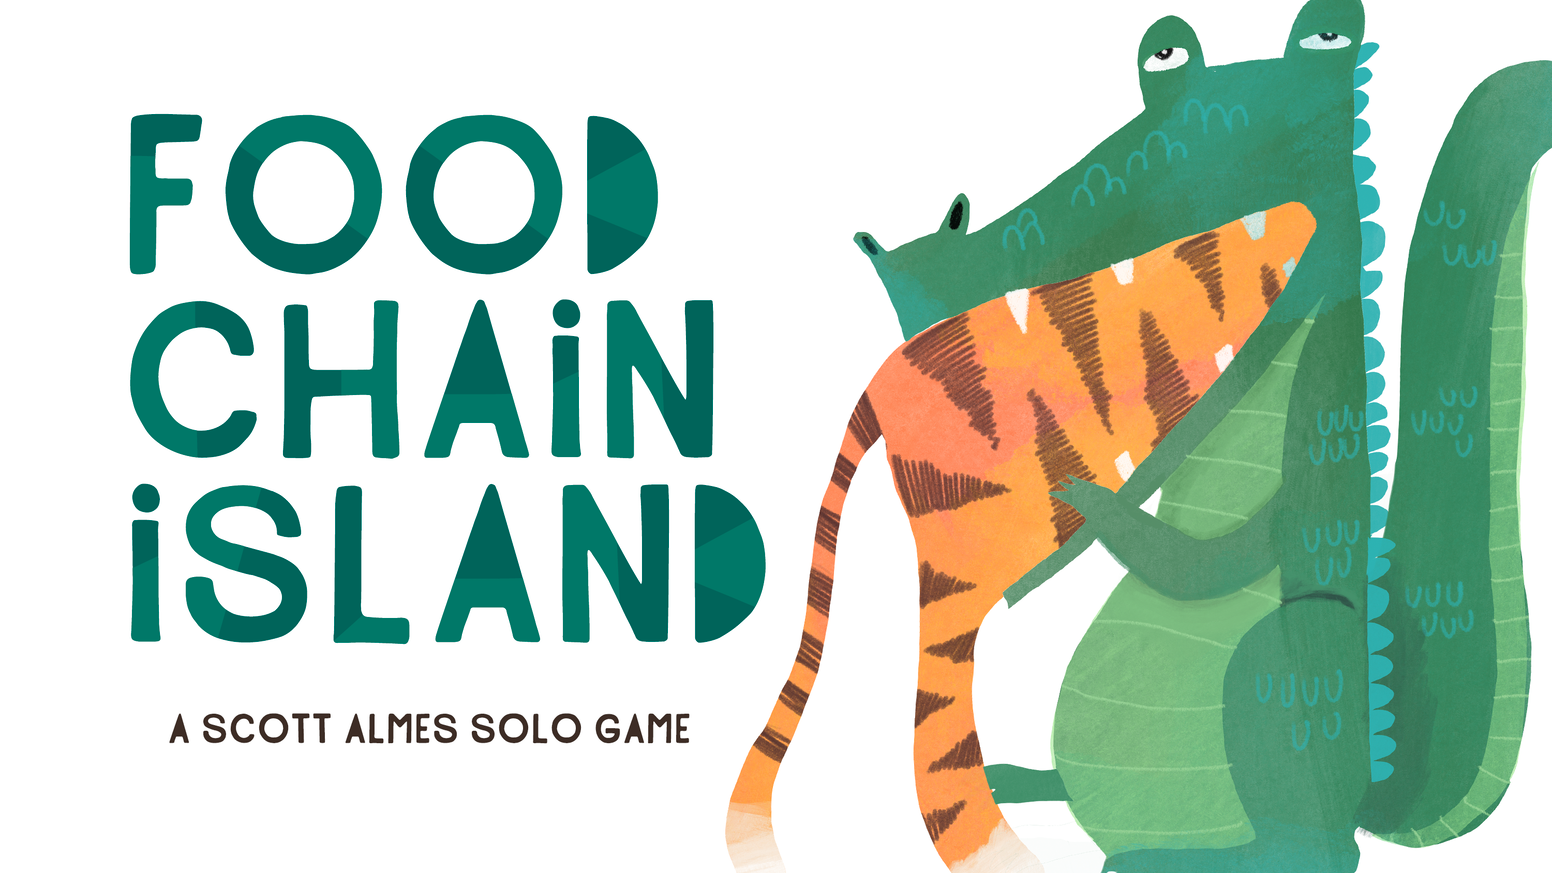 A solo game of whittling down the animal kingdom. Designed by Scott Almes. Artwork by Annie Wilkinson. Only $10 with free expansion! Pre-order at the link below: